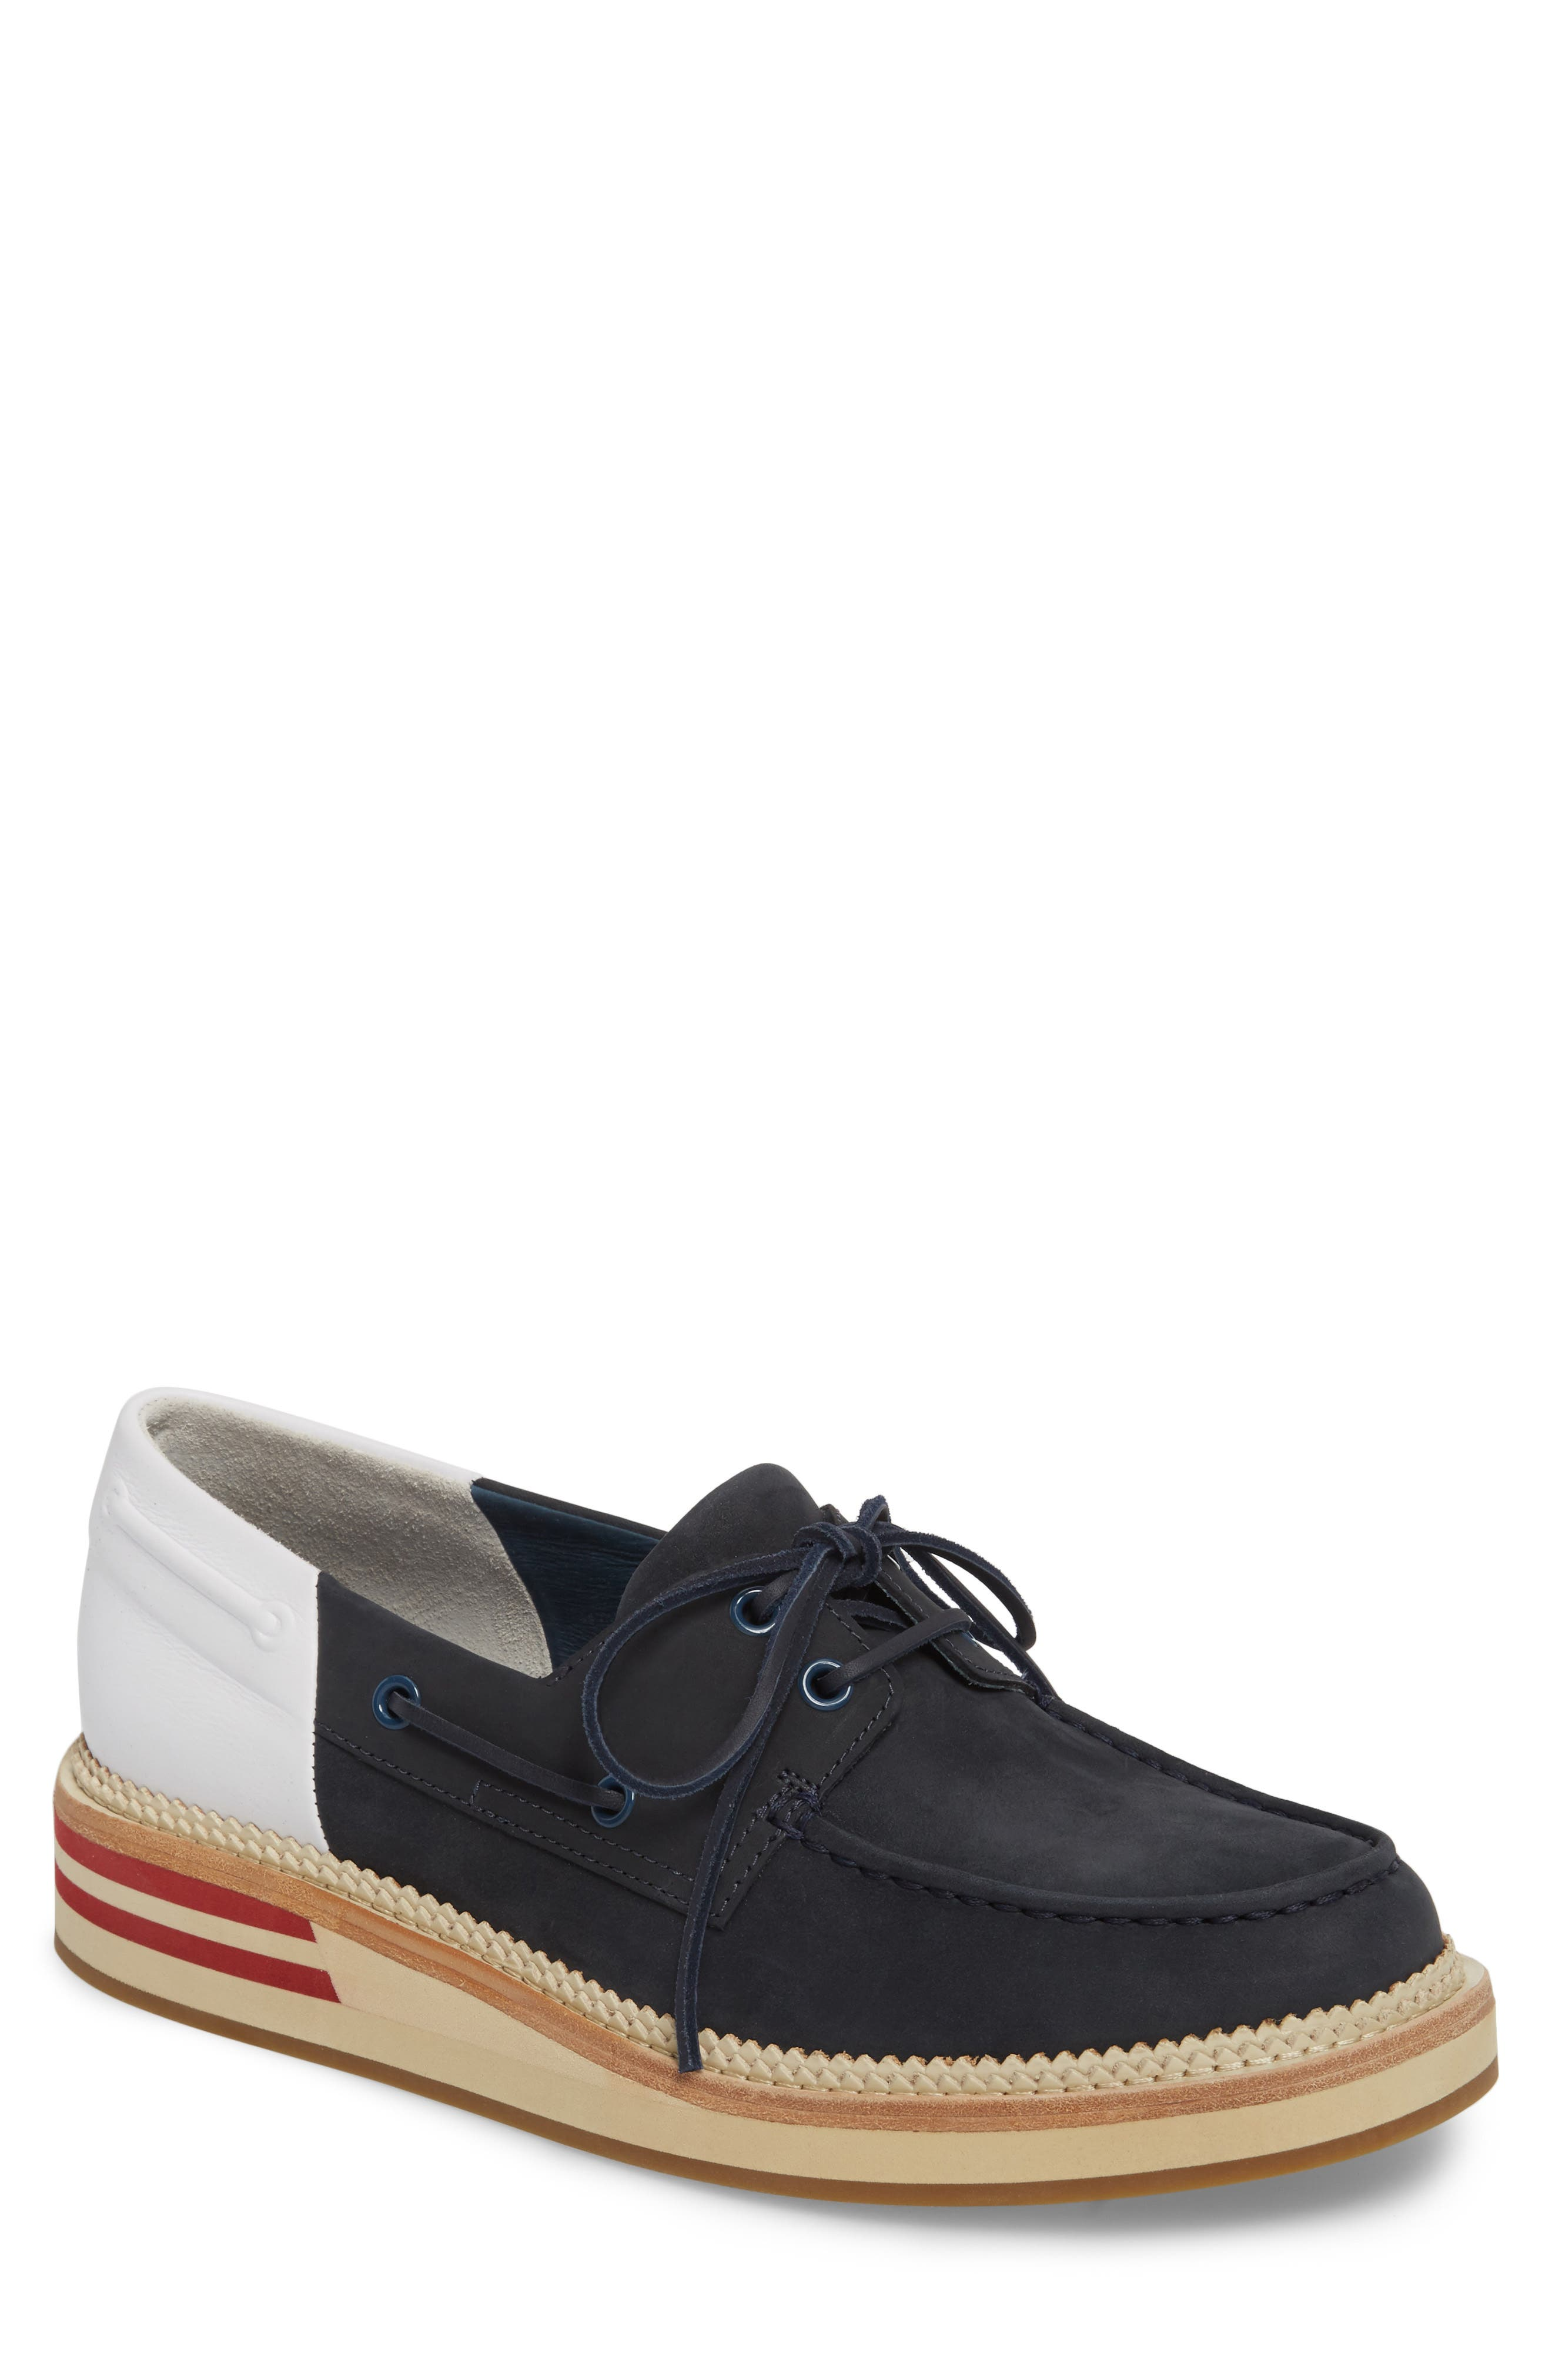 Cloud Colorblocked Boat Shoe,                             Main thumbnail 1, color,                             Navy/ White